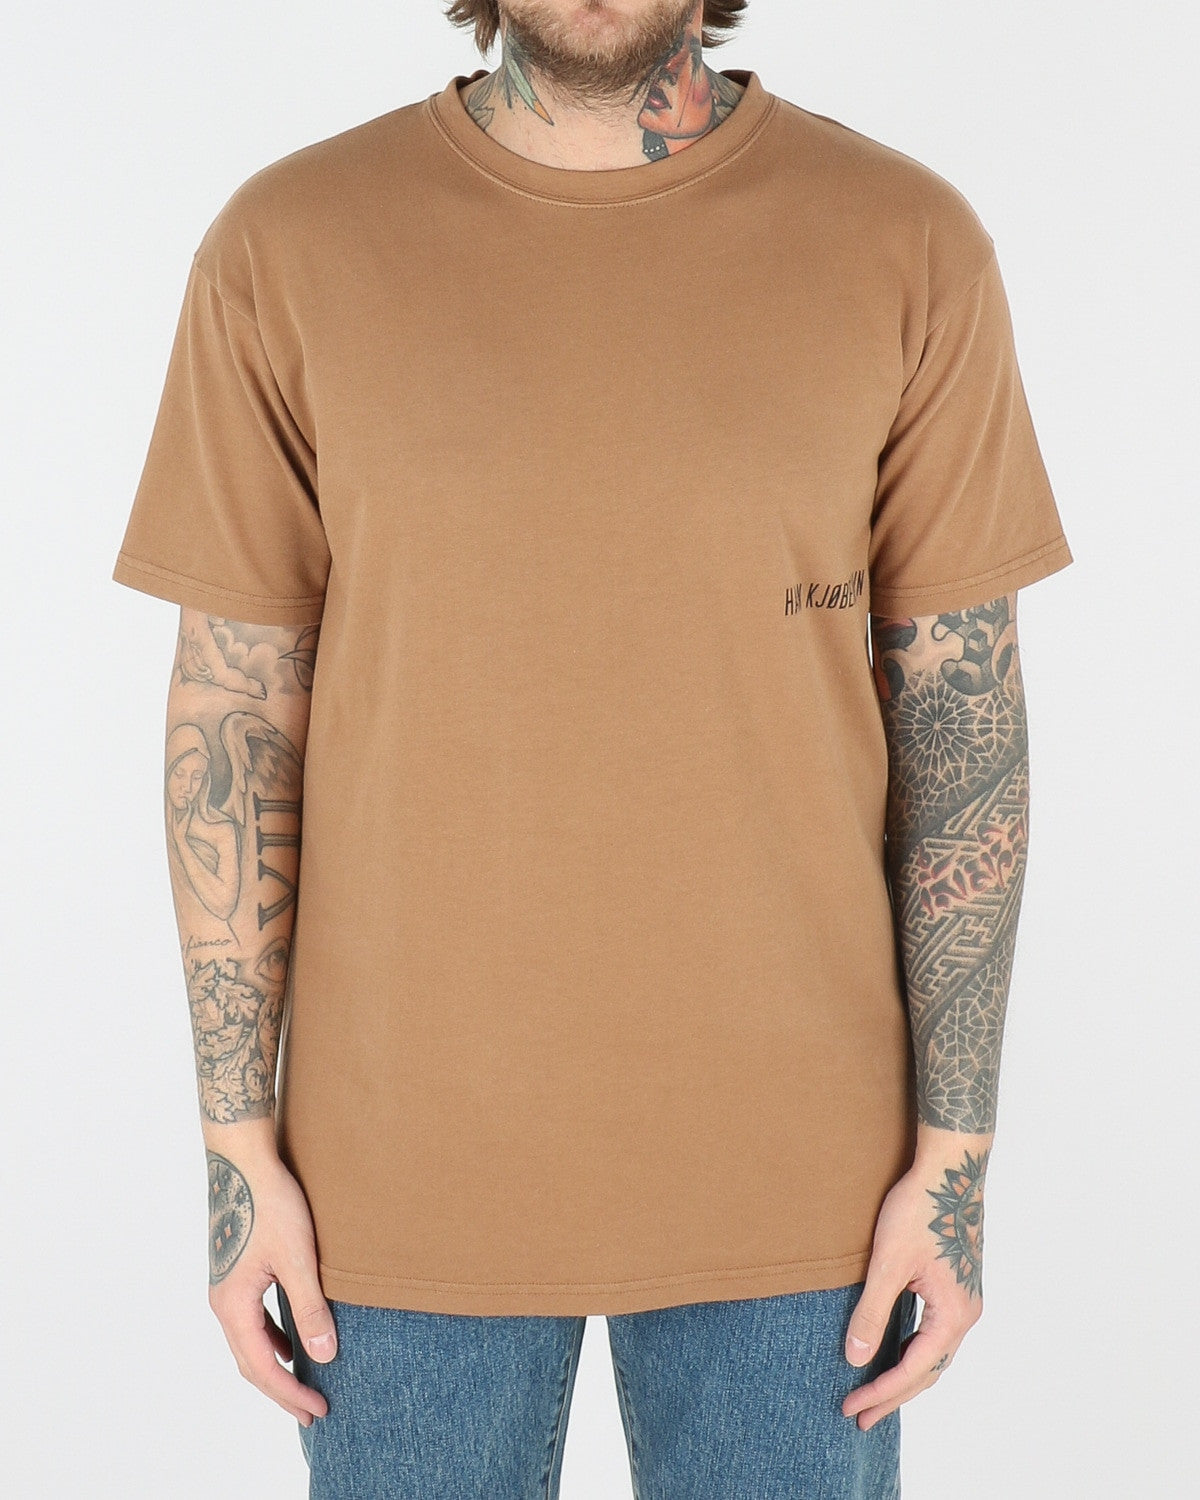 han kjobenhavn_casual t-shirt_brown small chest logo_view_1_2